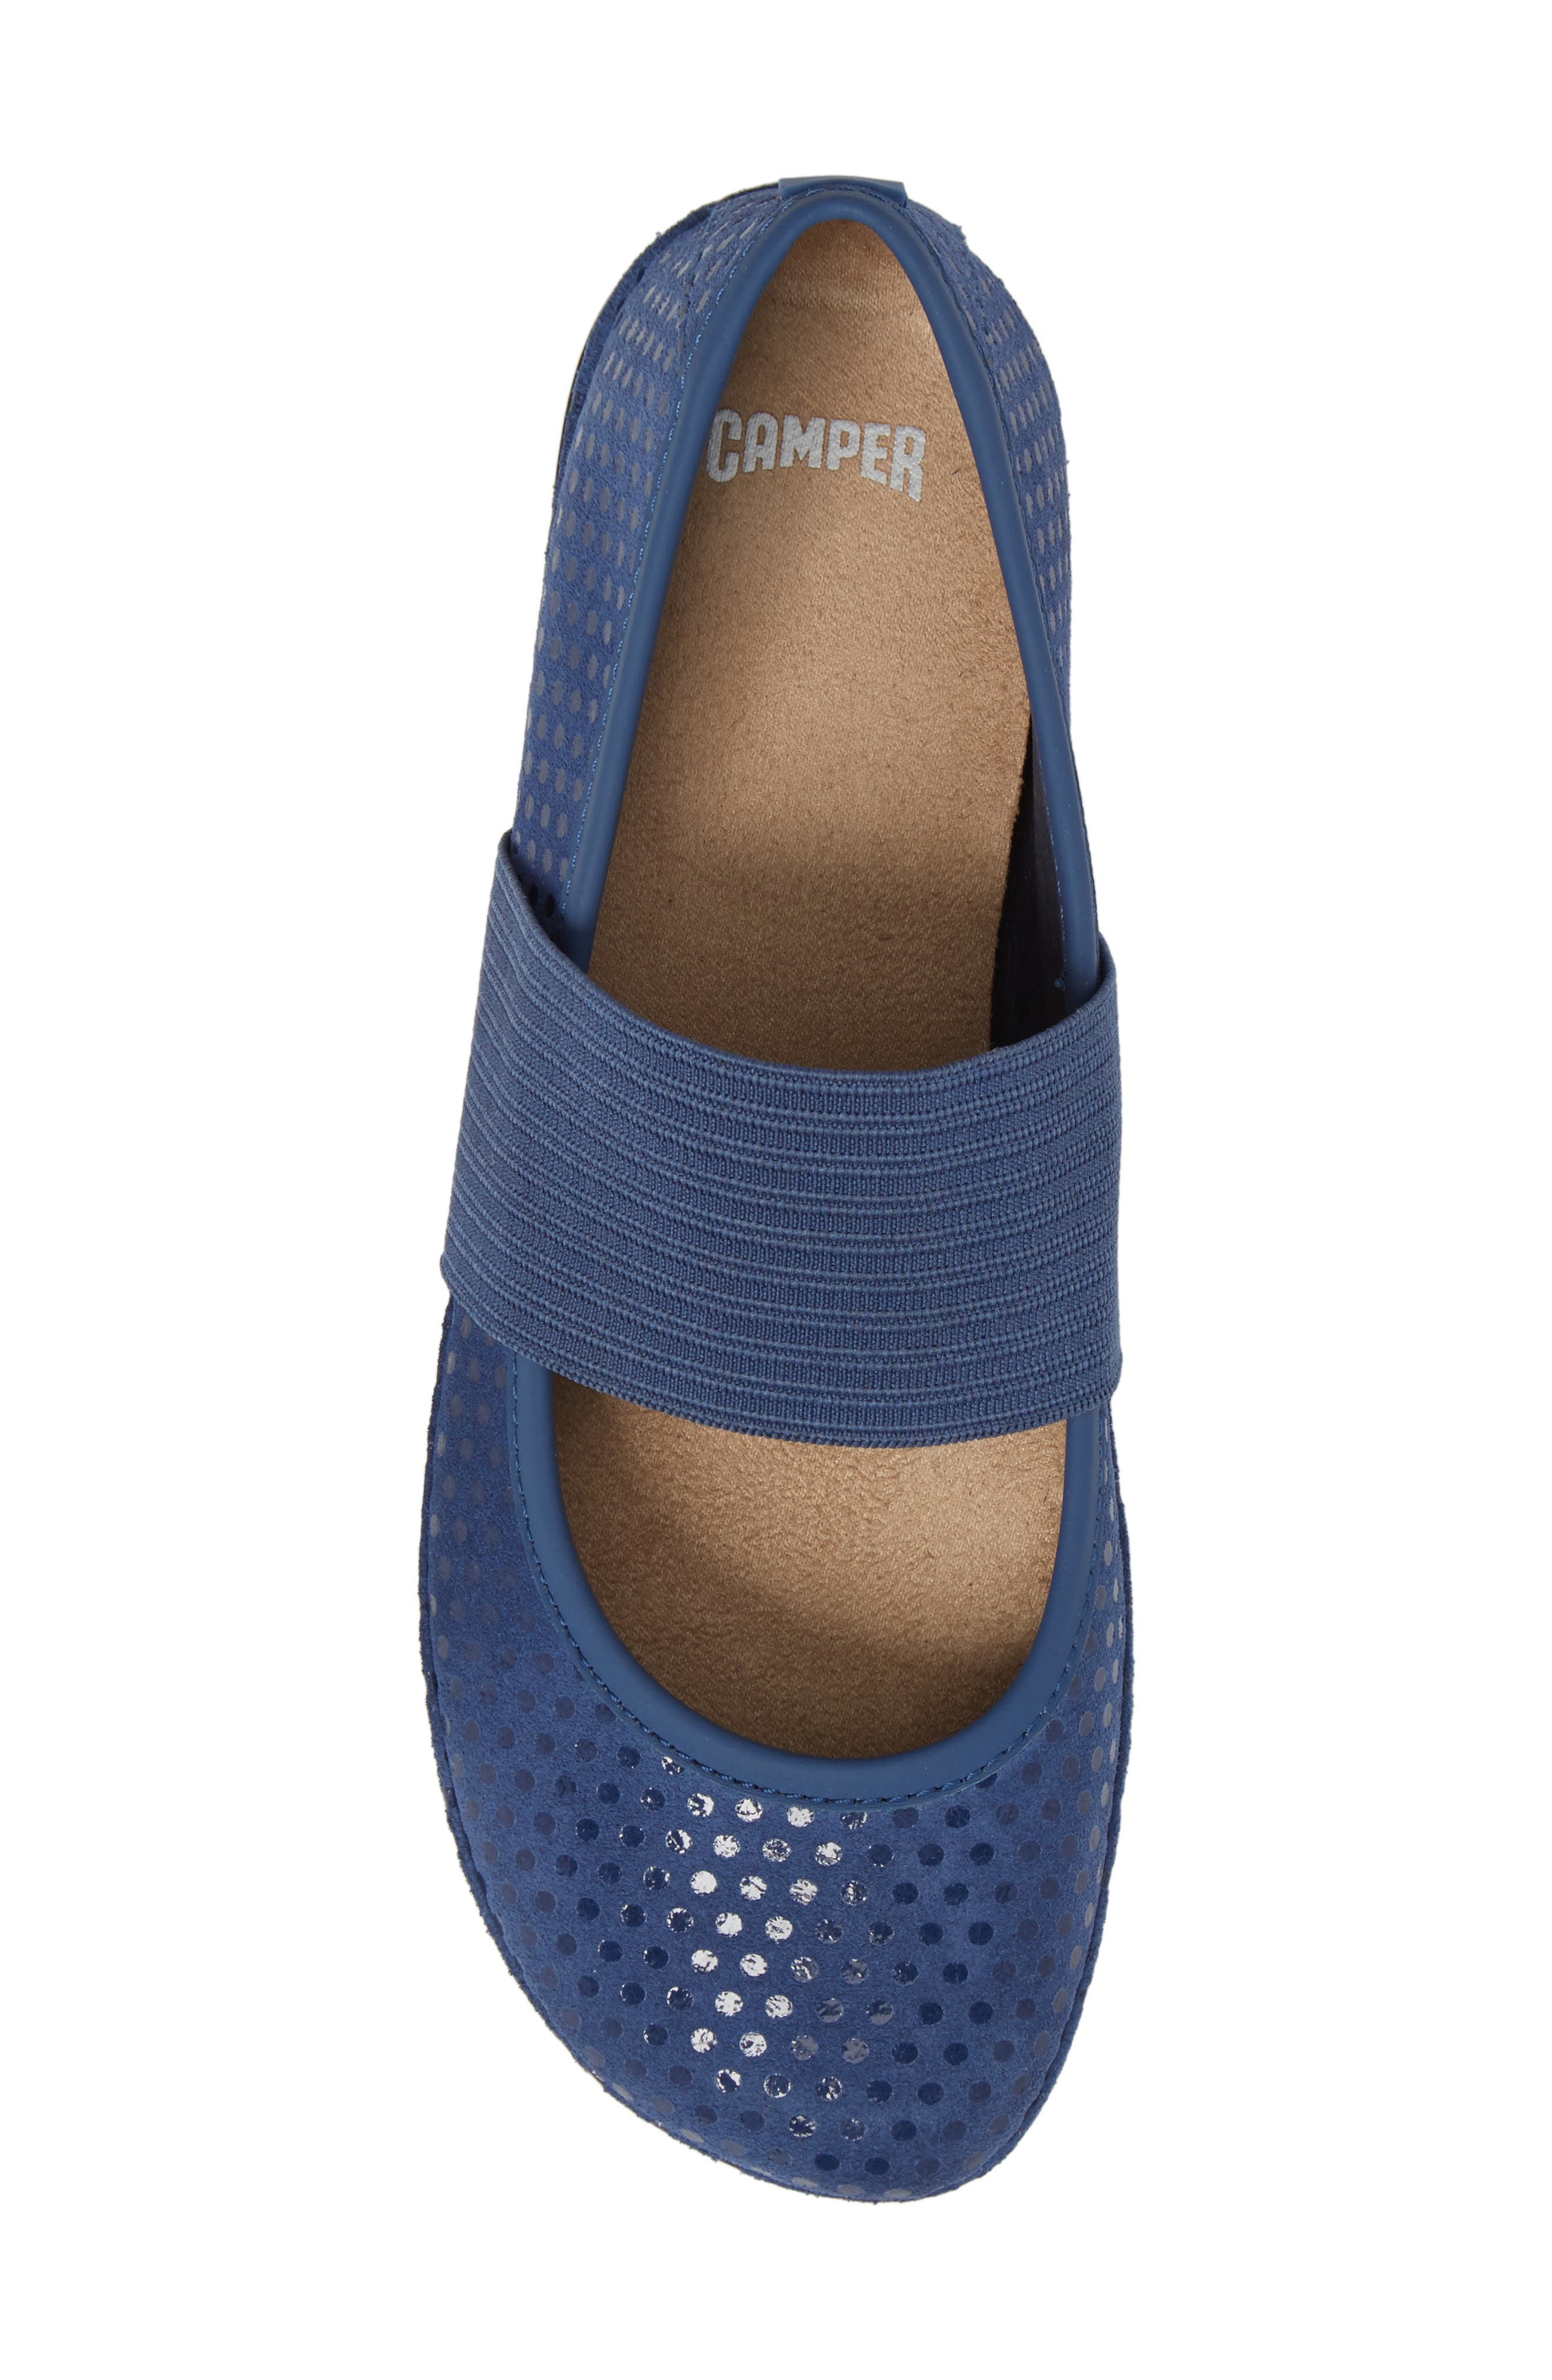 Right Nina Ballerina Flat,                             Alternate thumbnail 5, color,                             Medium Blue Nubuck